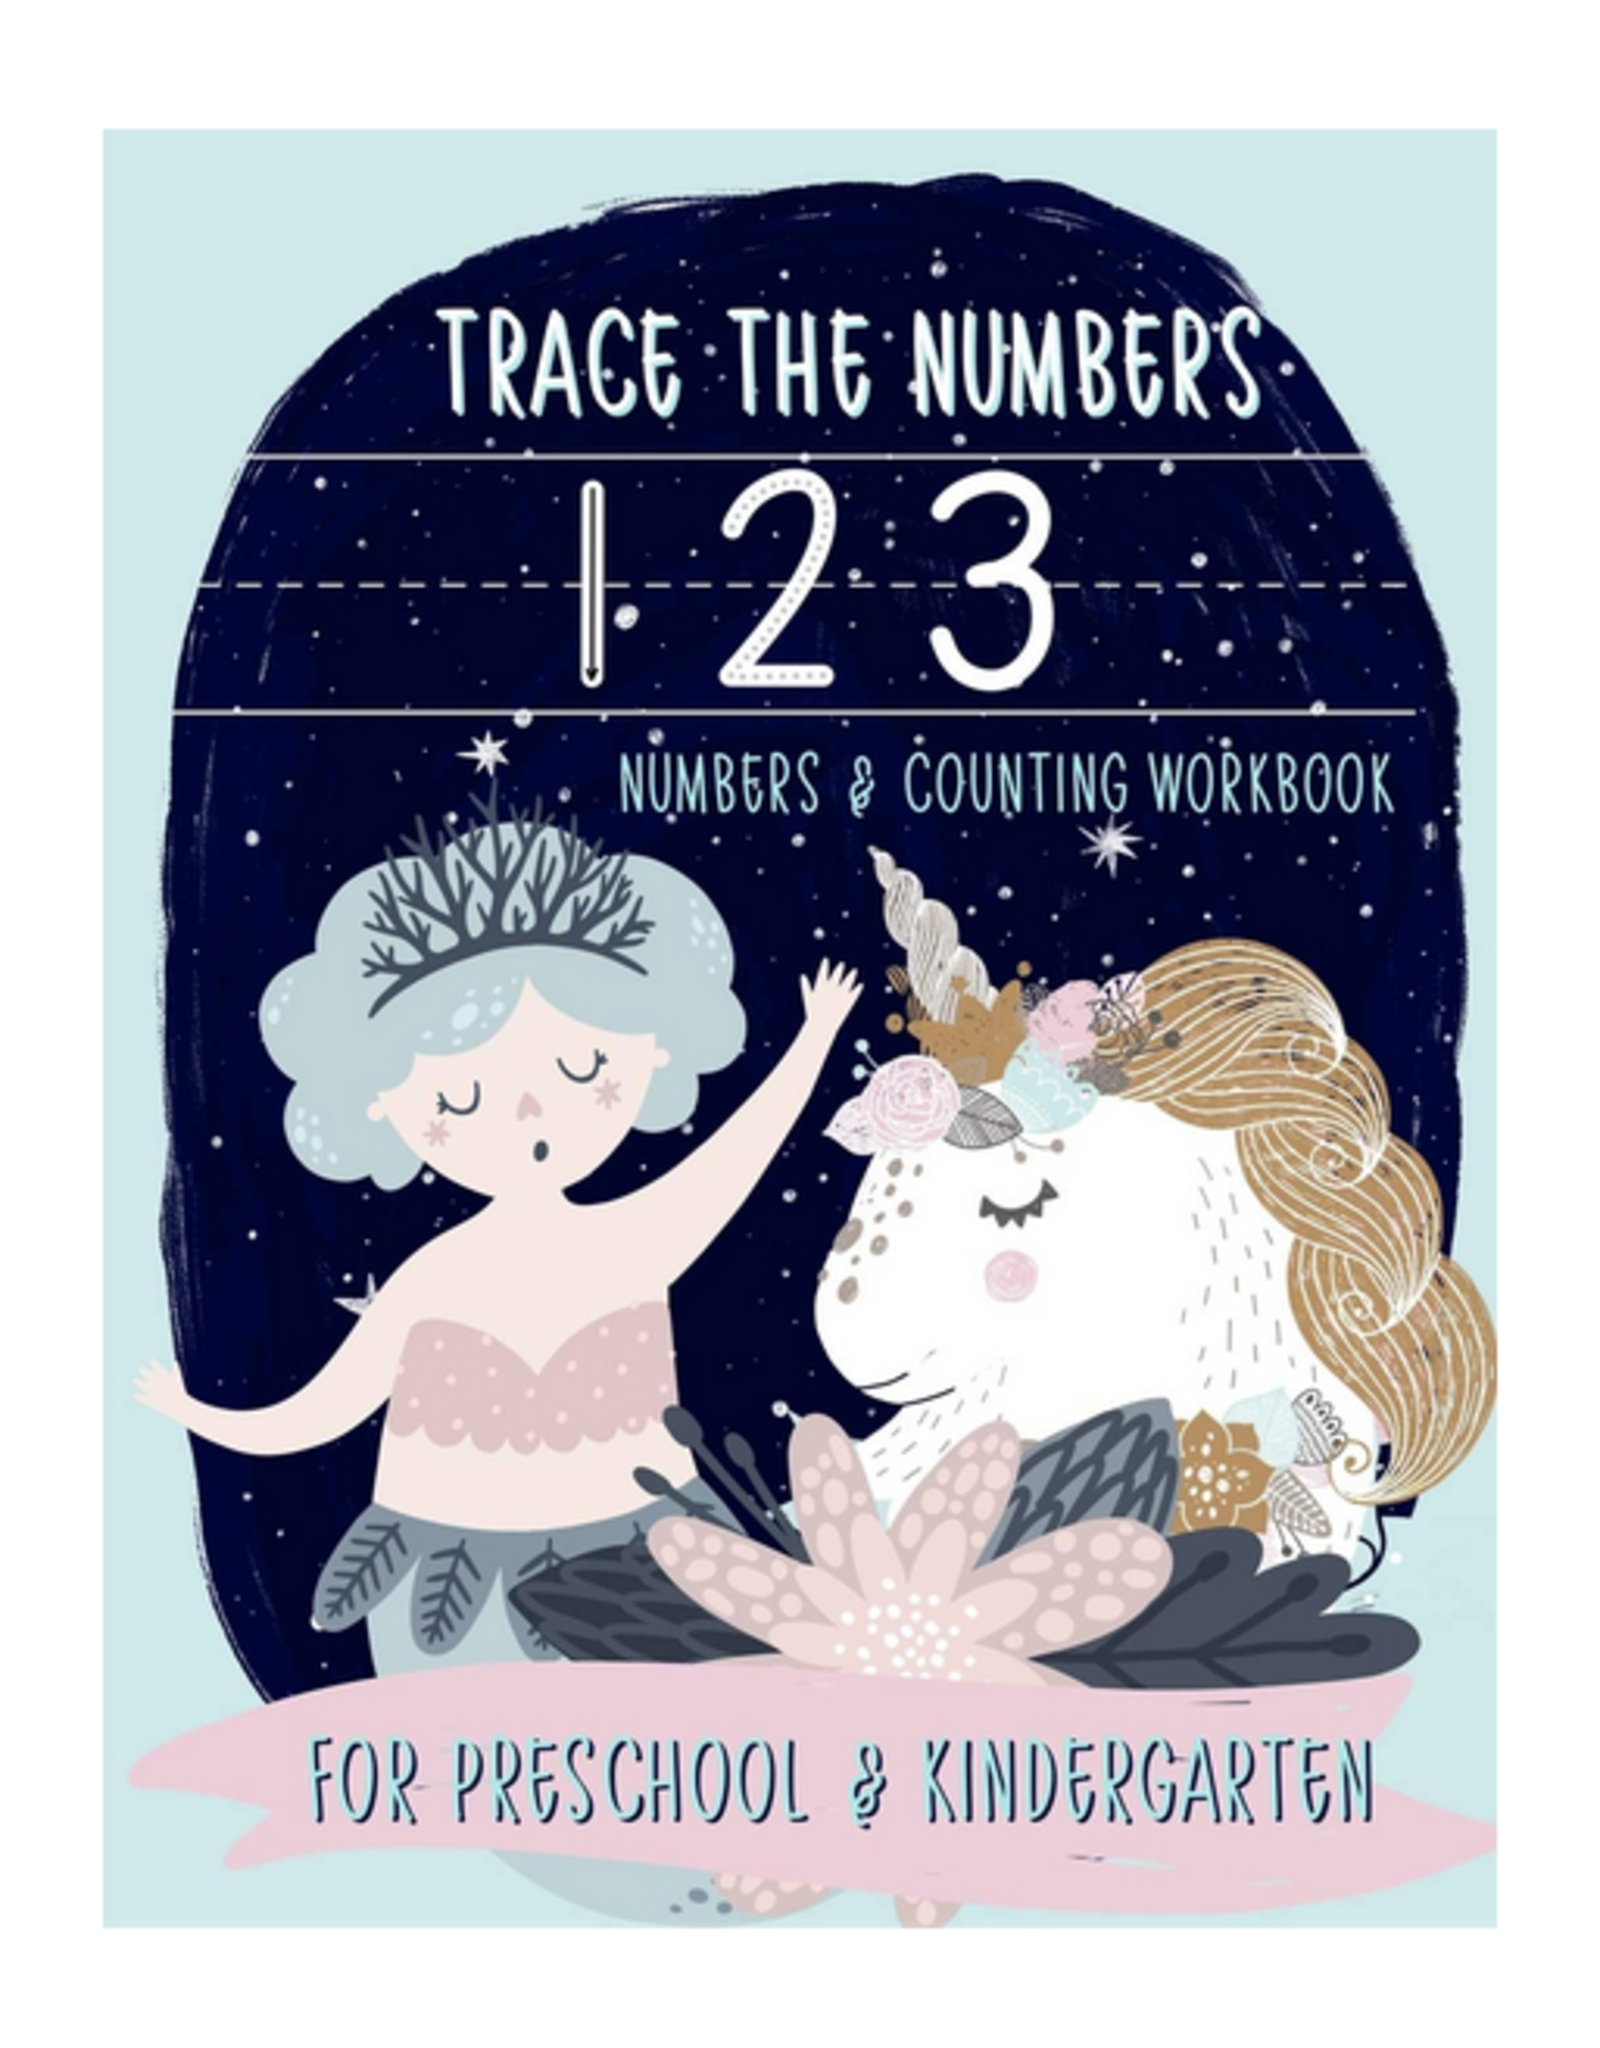 June & Lucy Kids Activity Book for Kids, Trace the Numbers Unicorn & Mermaid